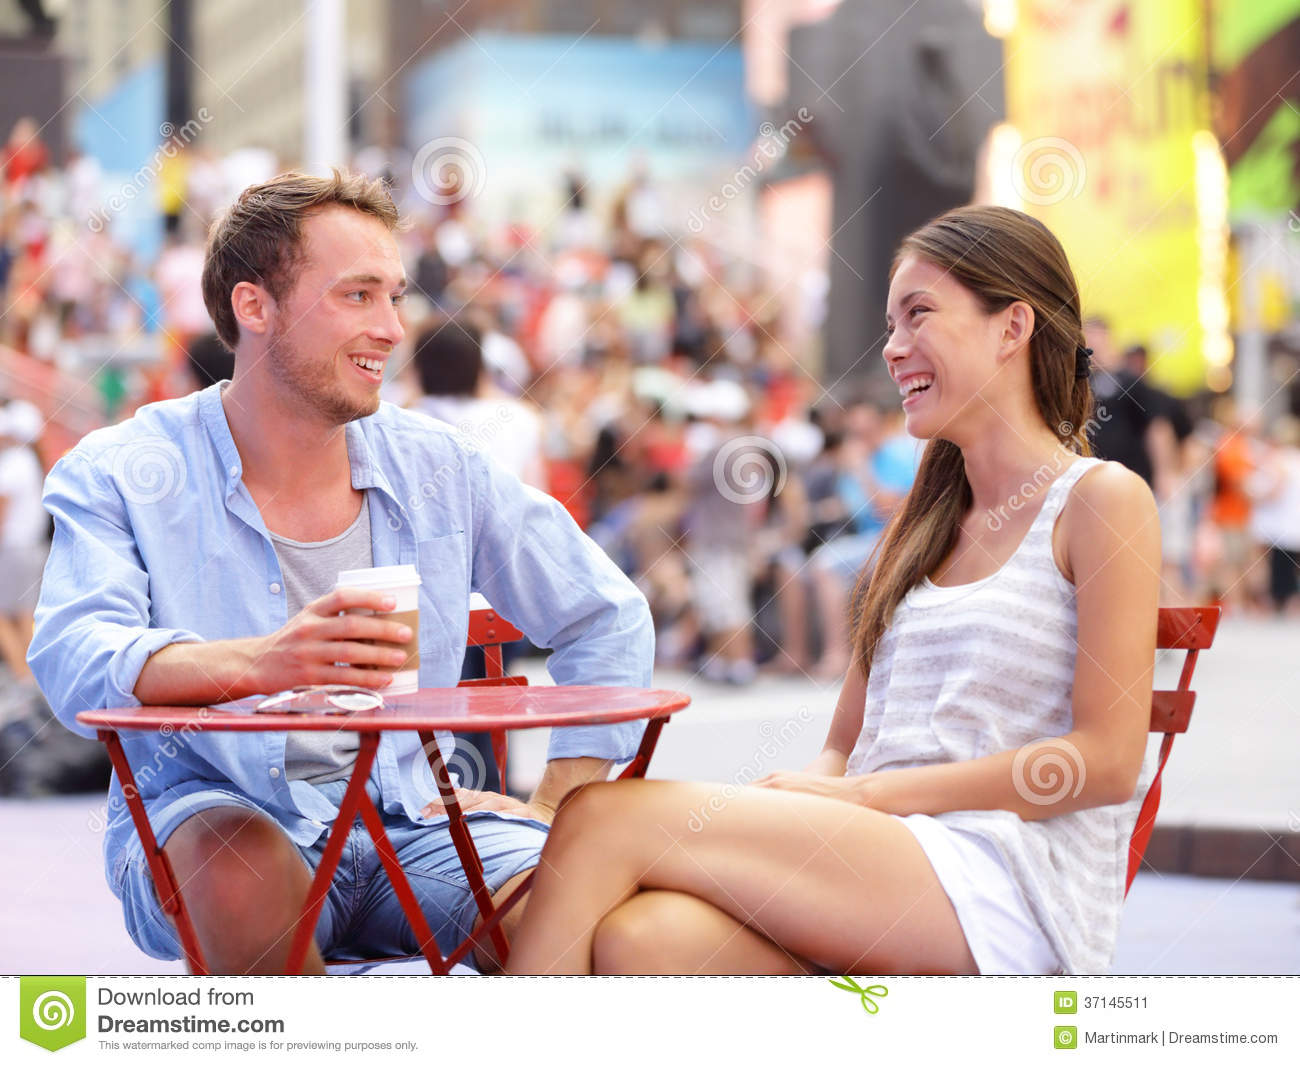 nyu dating Explore new york university reviews, rankings, and statistics is it the right college for you.